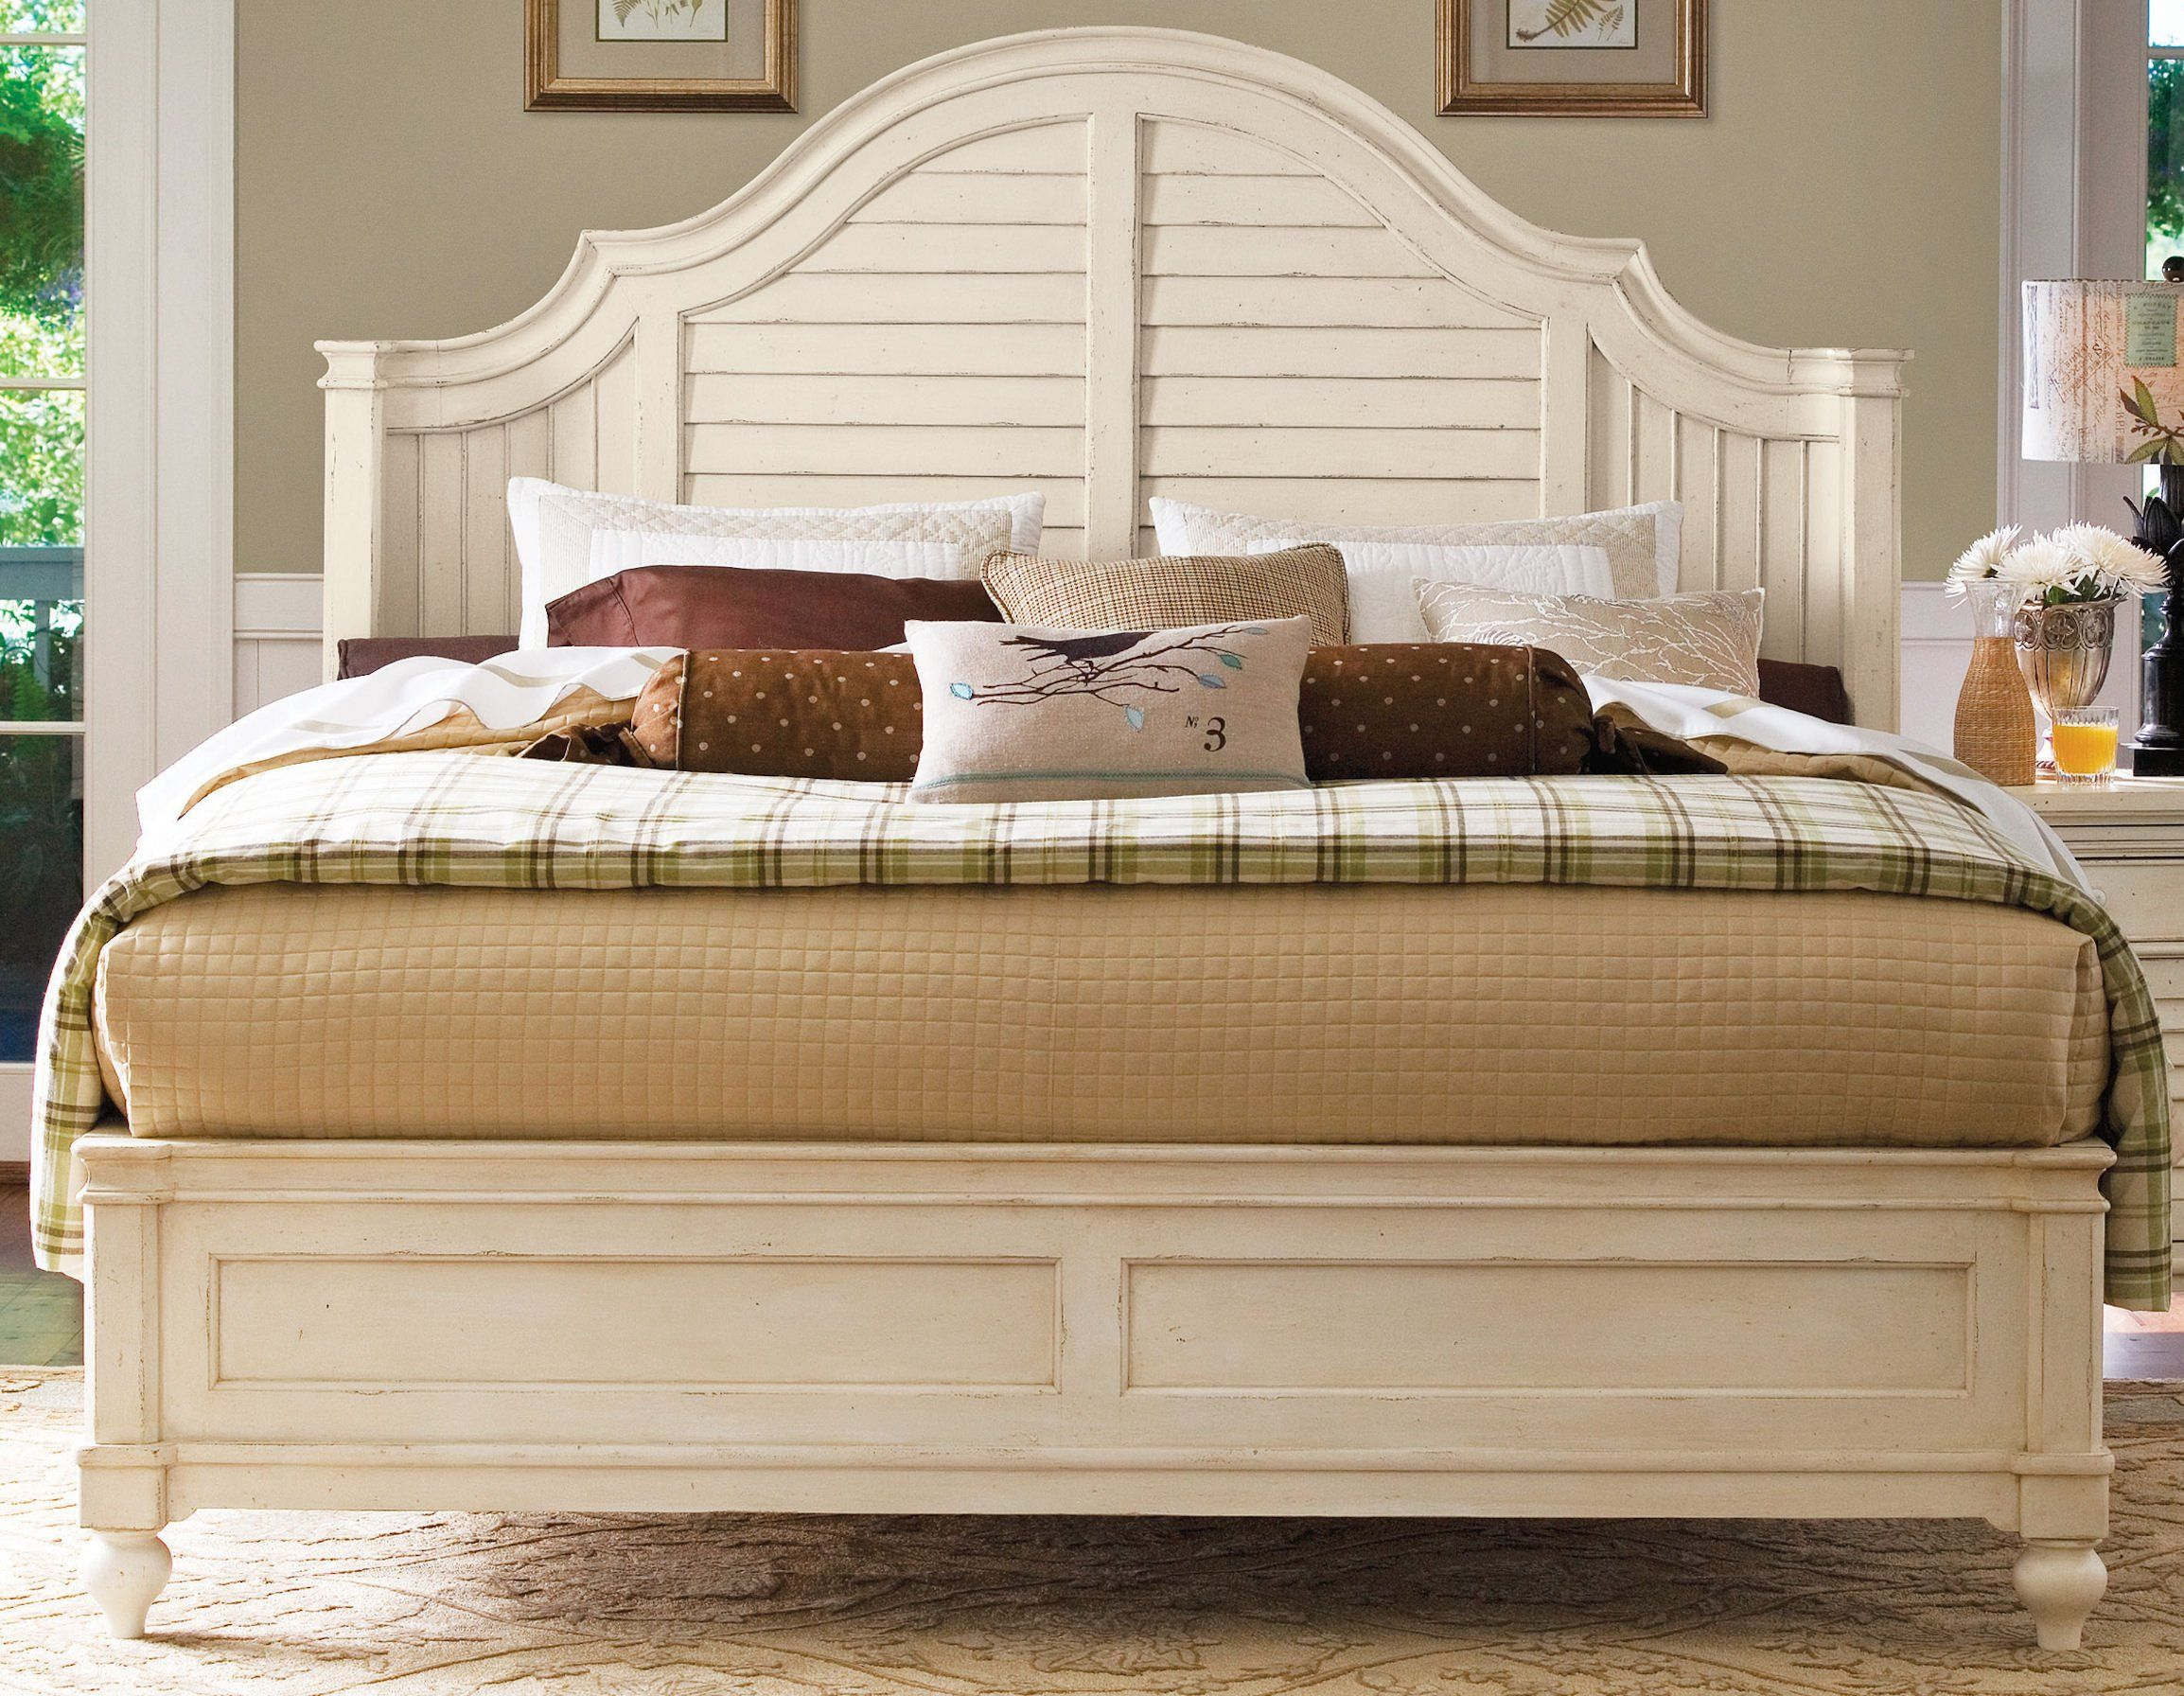 Sears Furniture Beds Modern Furniture Cheap Check more at